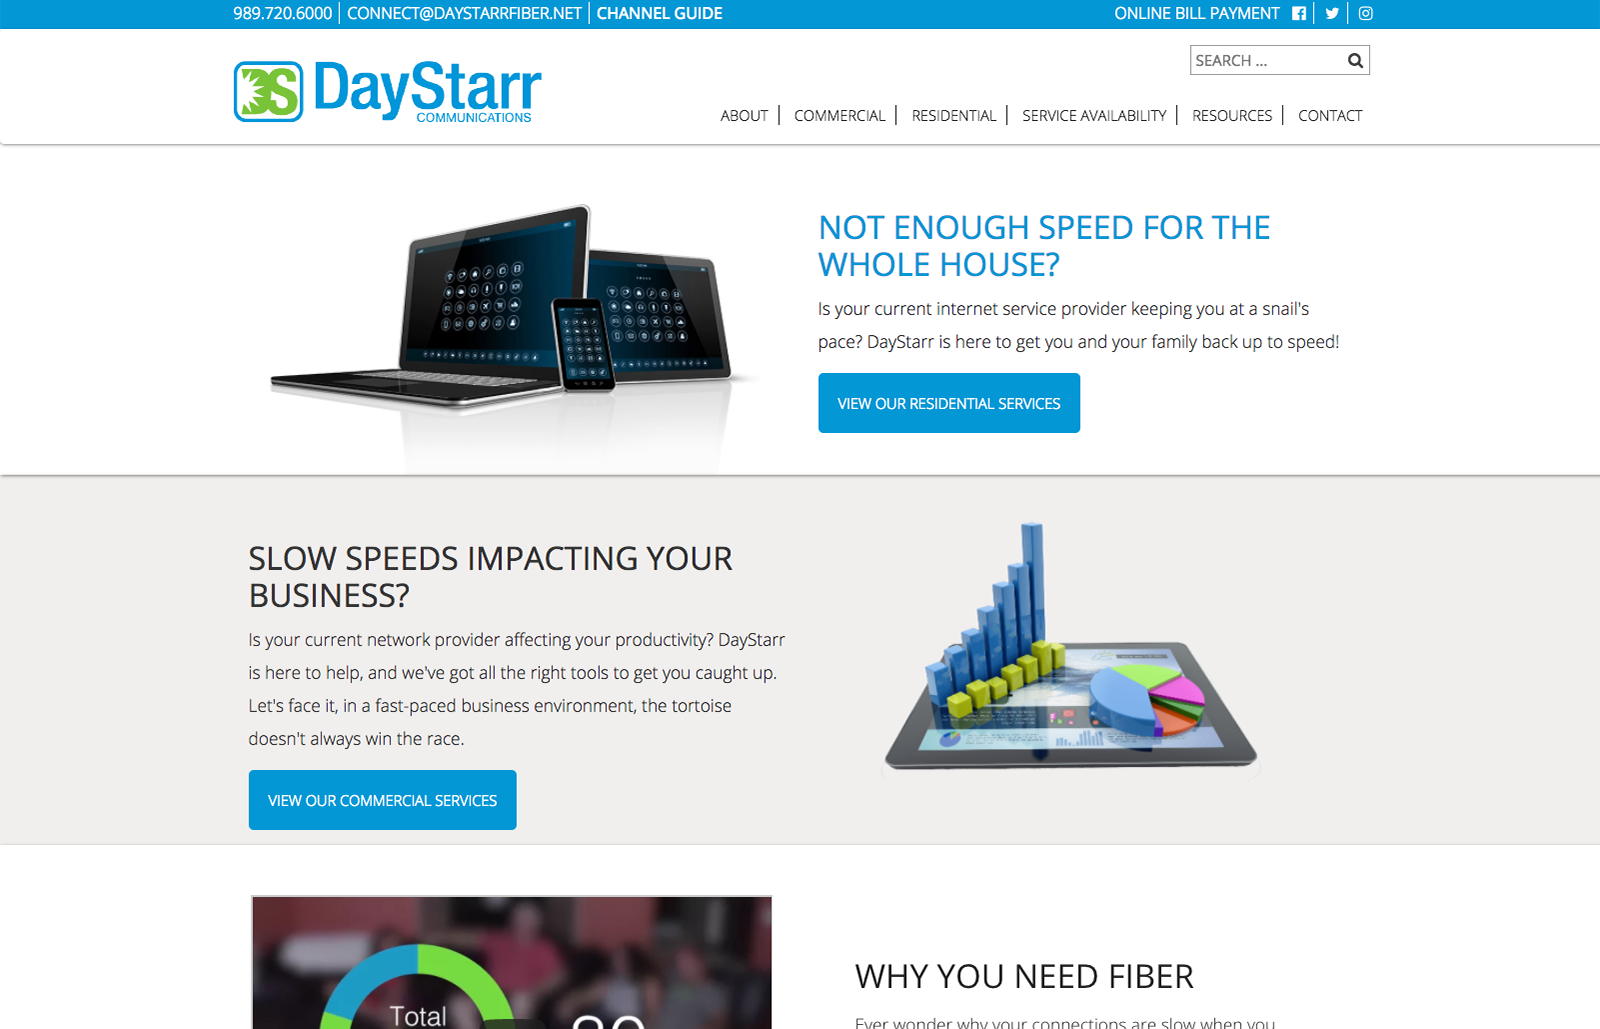 Image Of The Daystarr Communications Digital Marketing Project